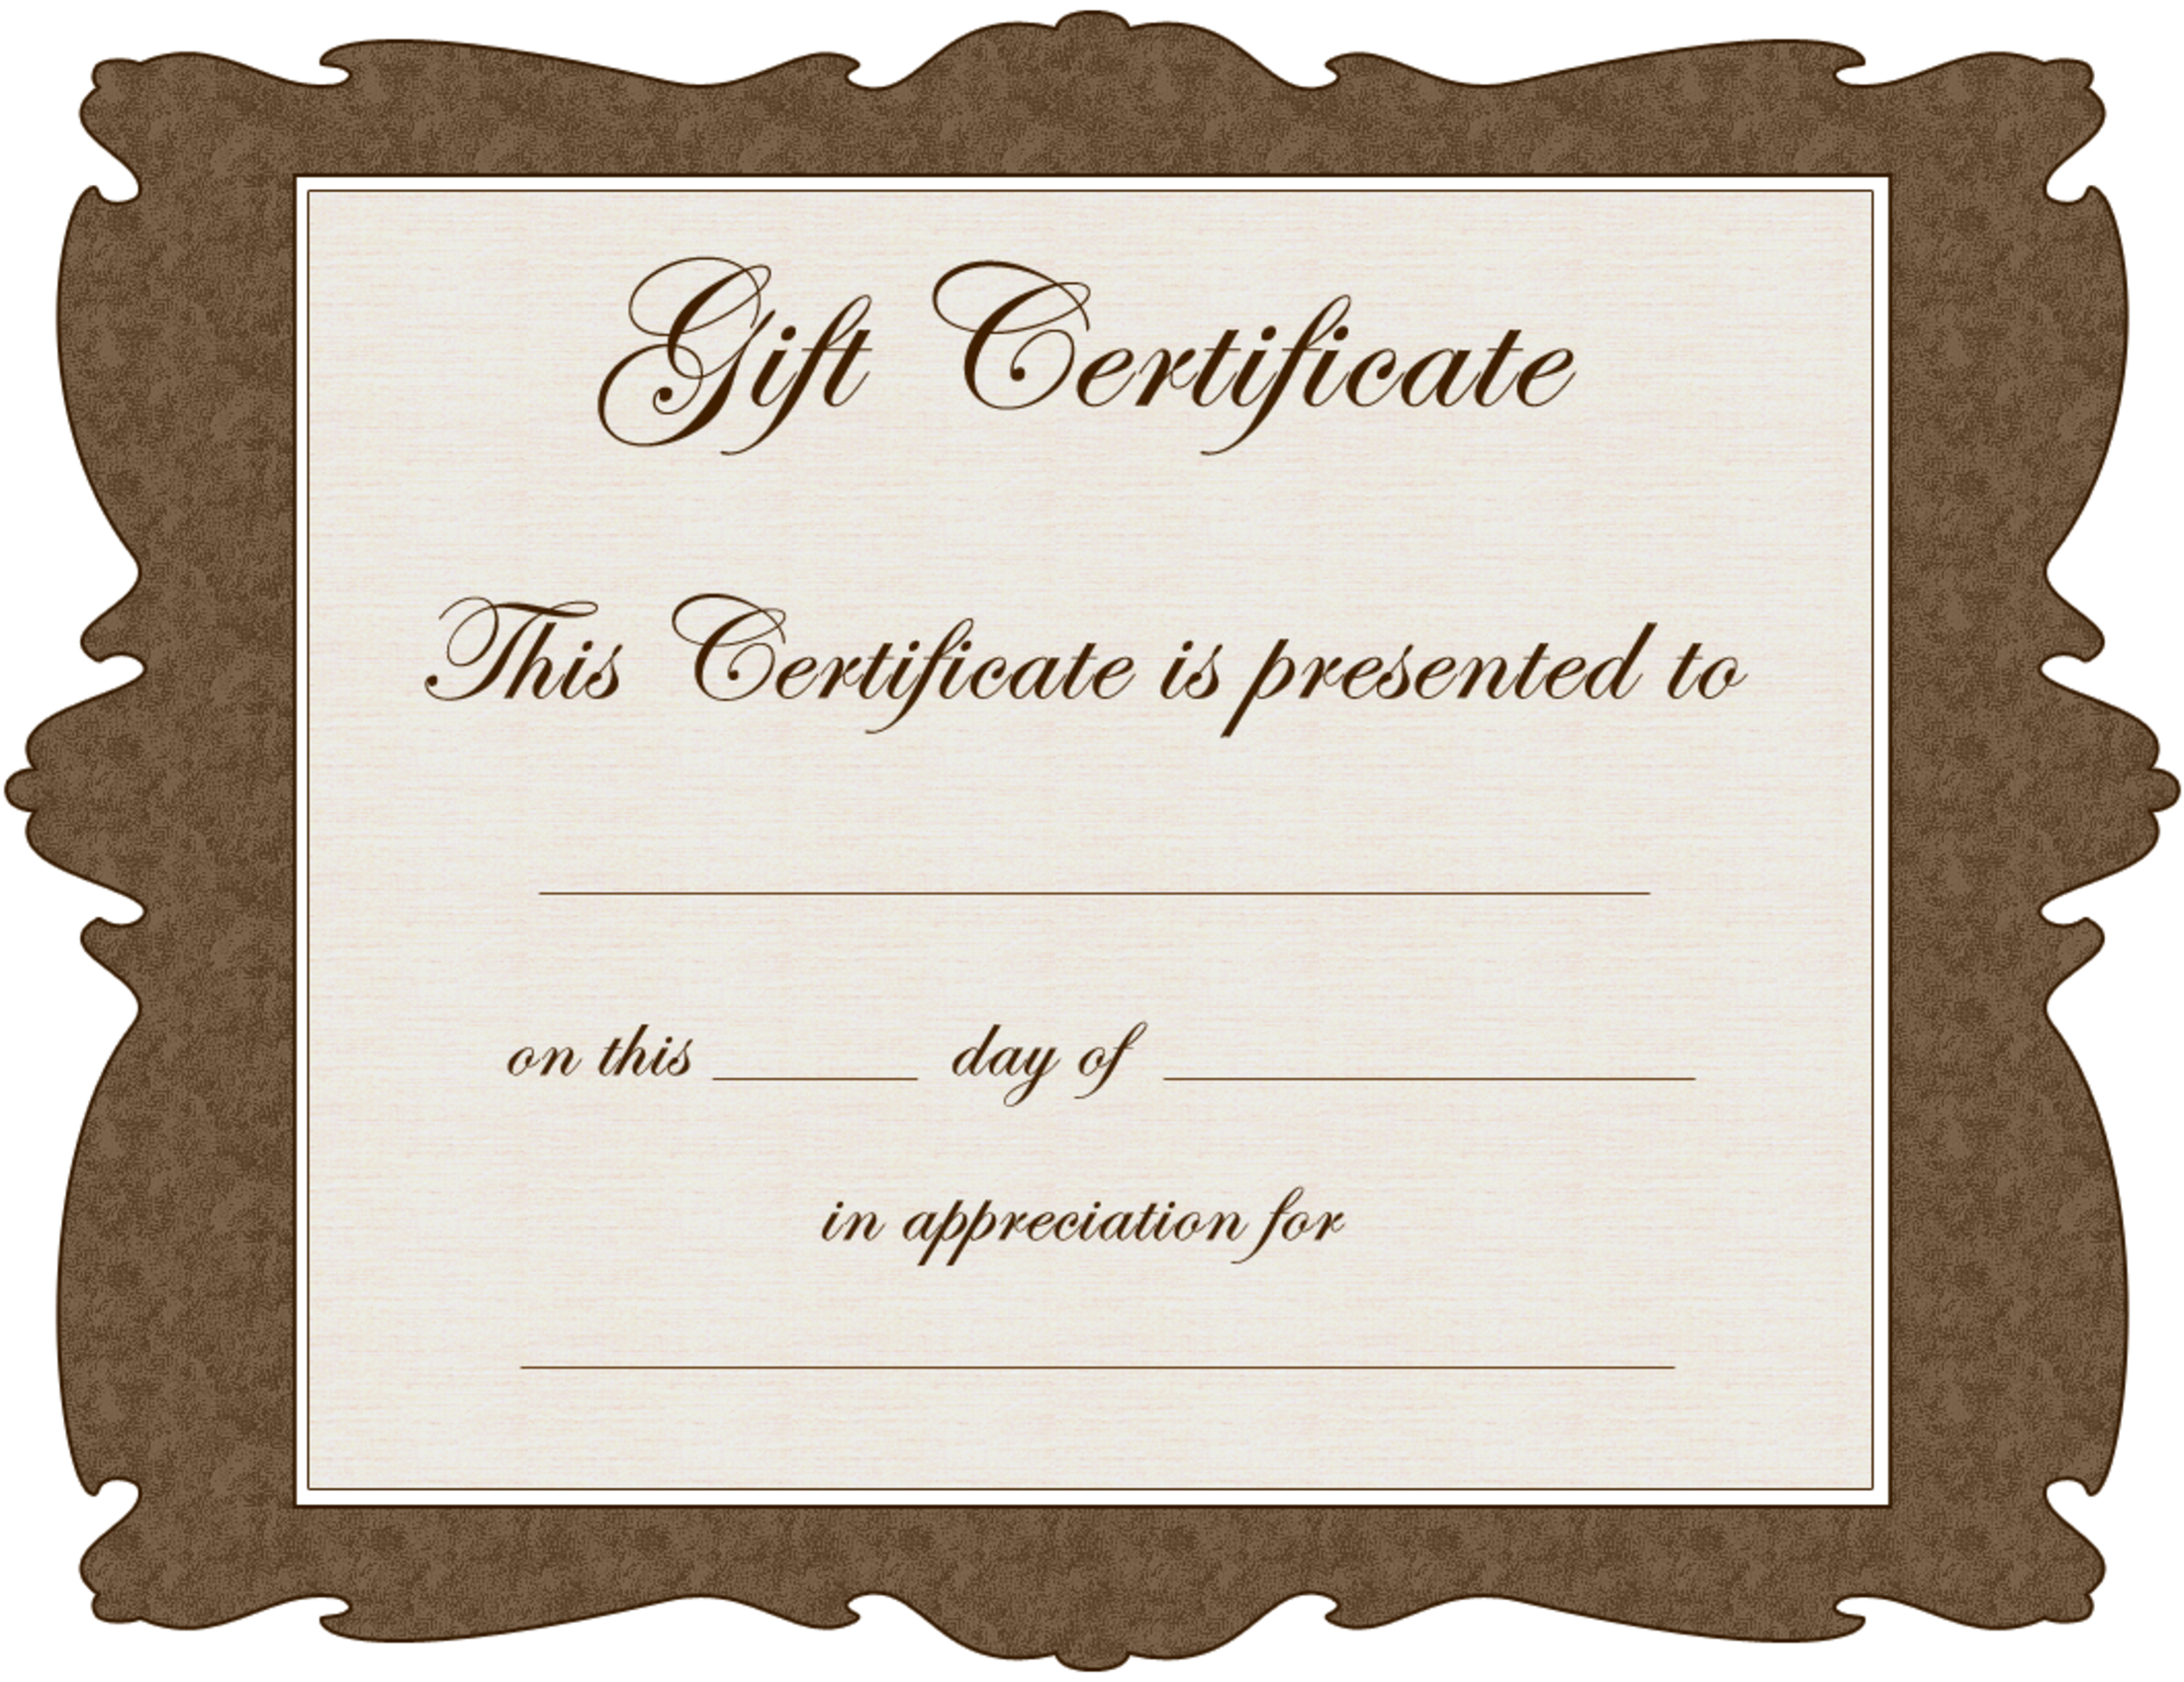 We appreciate you yolie pinterest free gift certificate free gift certificate template 1betcityfo Choice Image